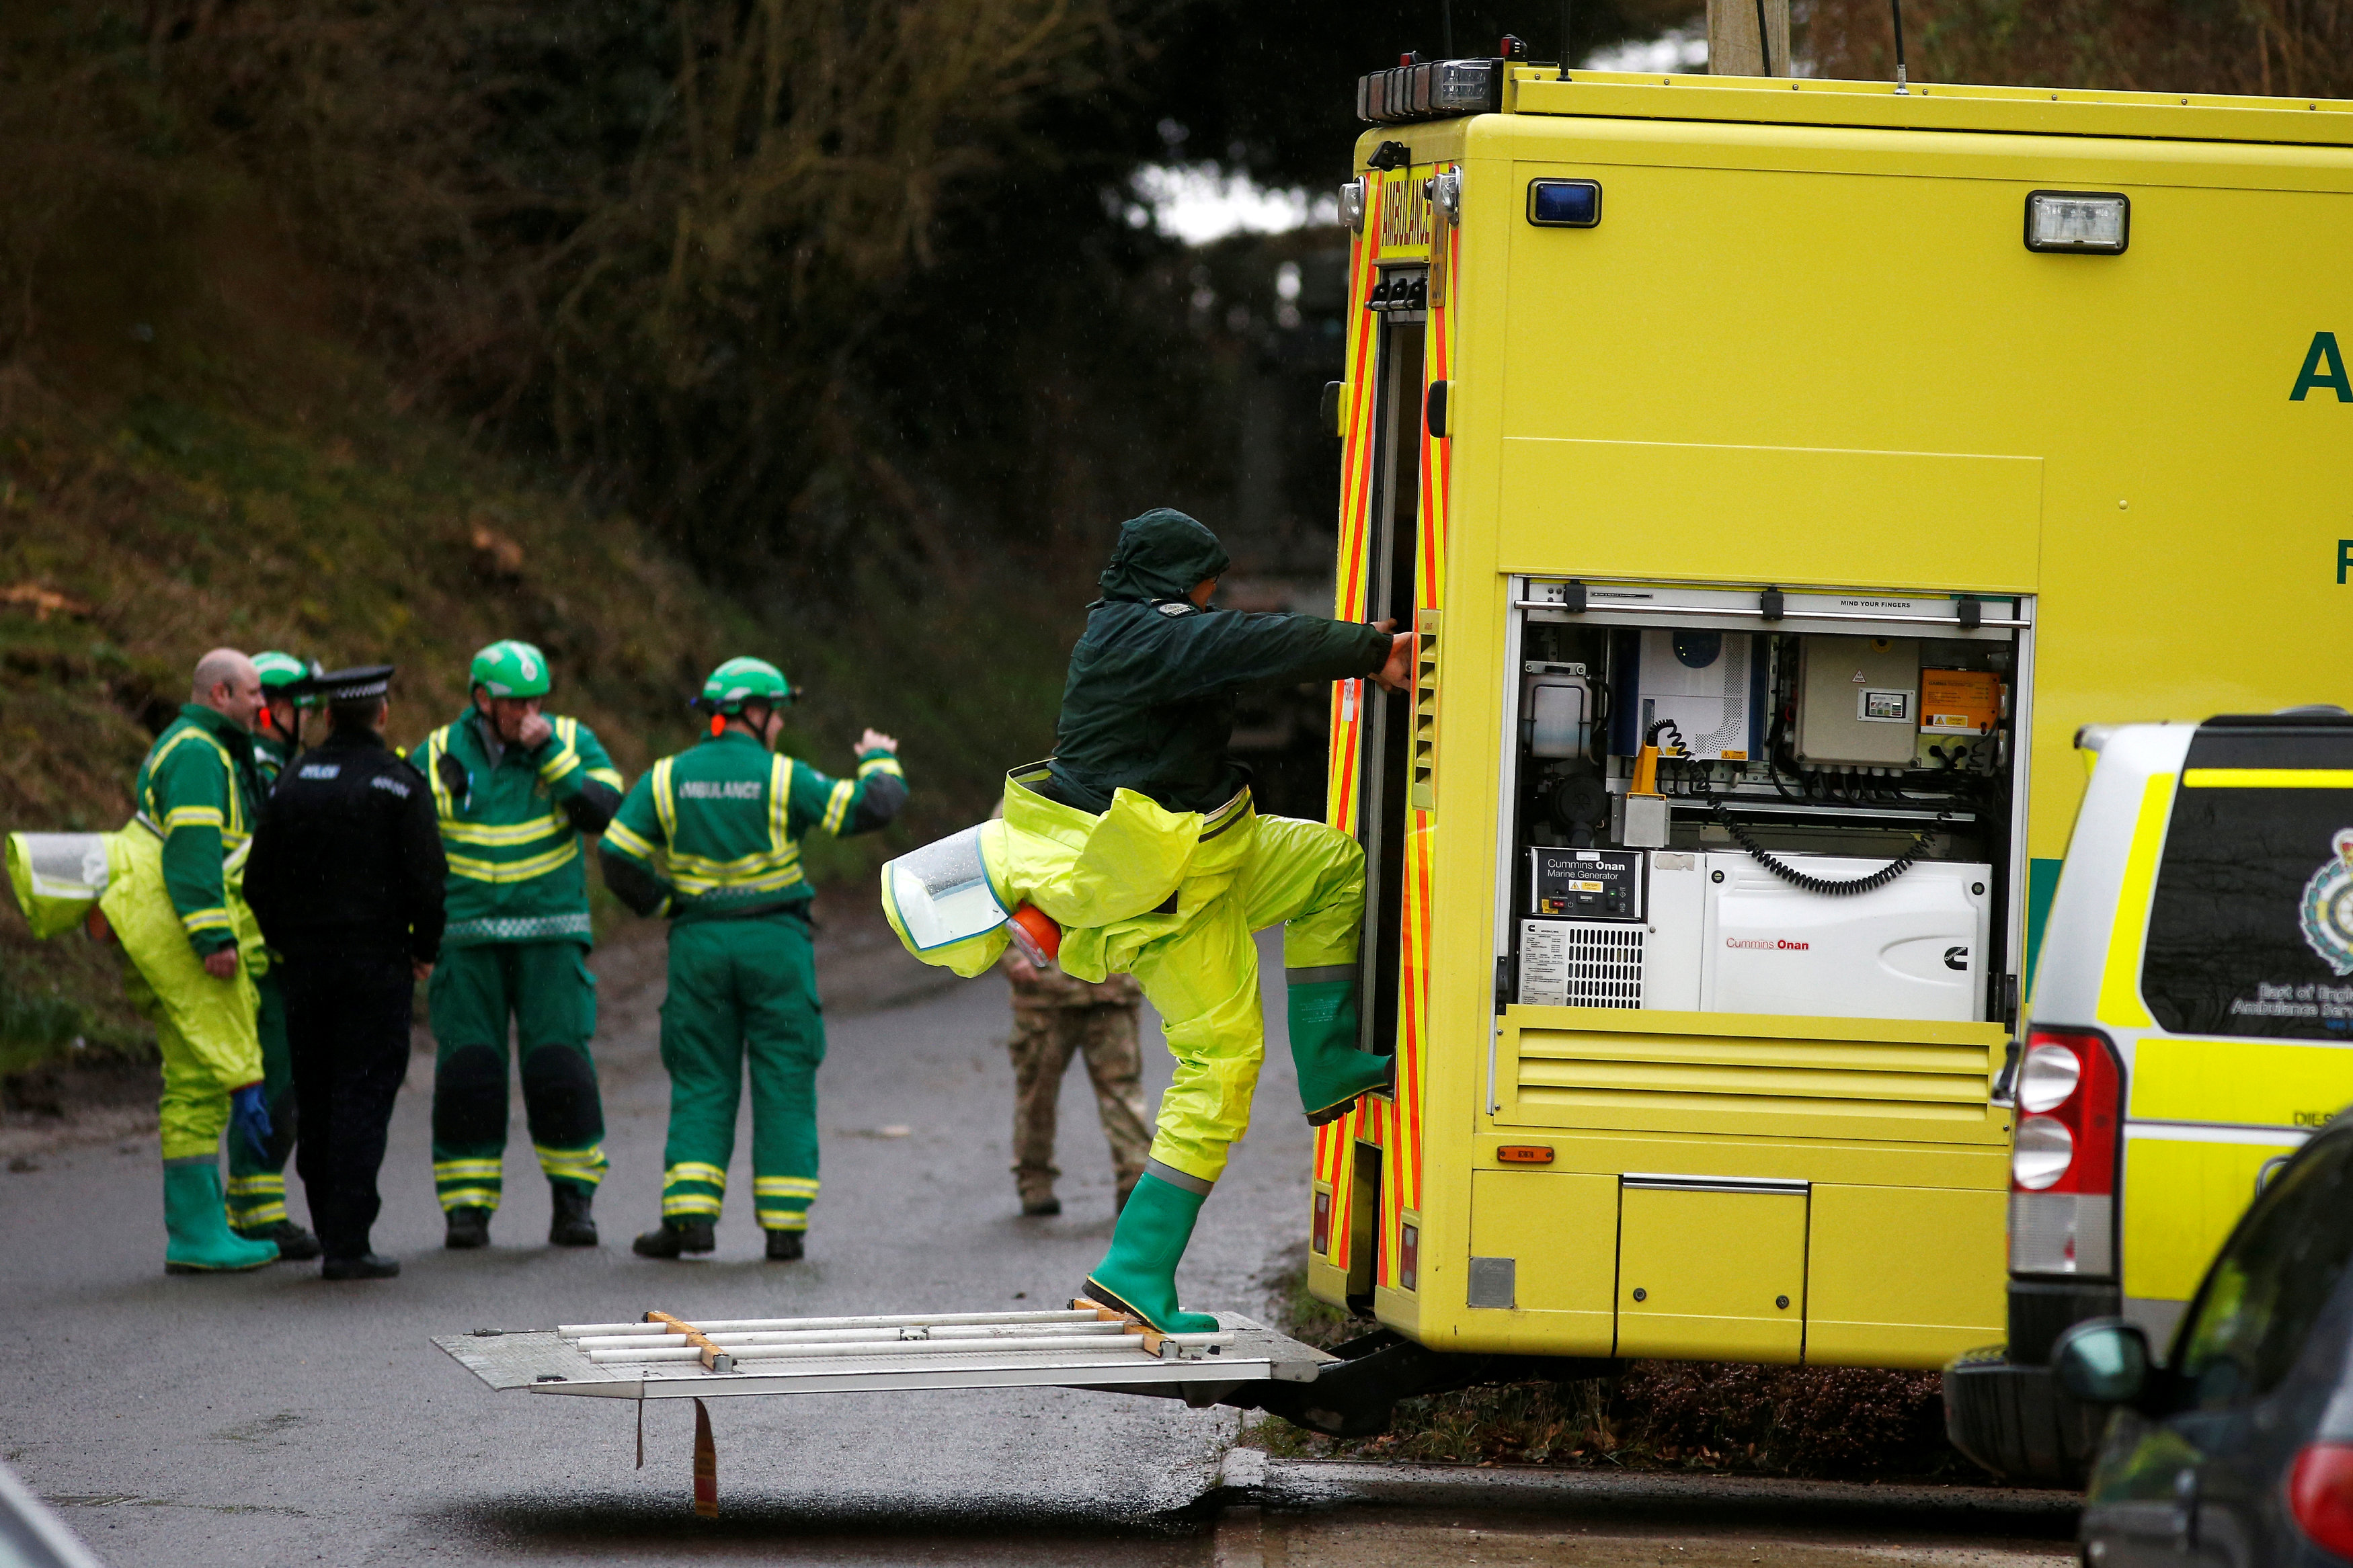 Members of the emergency services wearing protective suits work at a site in Winterslow, near Salisbury, Britain, March 12, 2018. REUTERS/Henry Nicholls